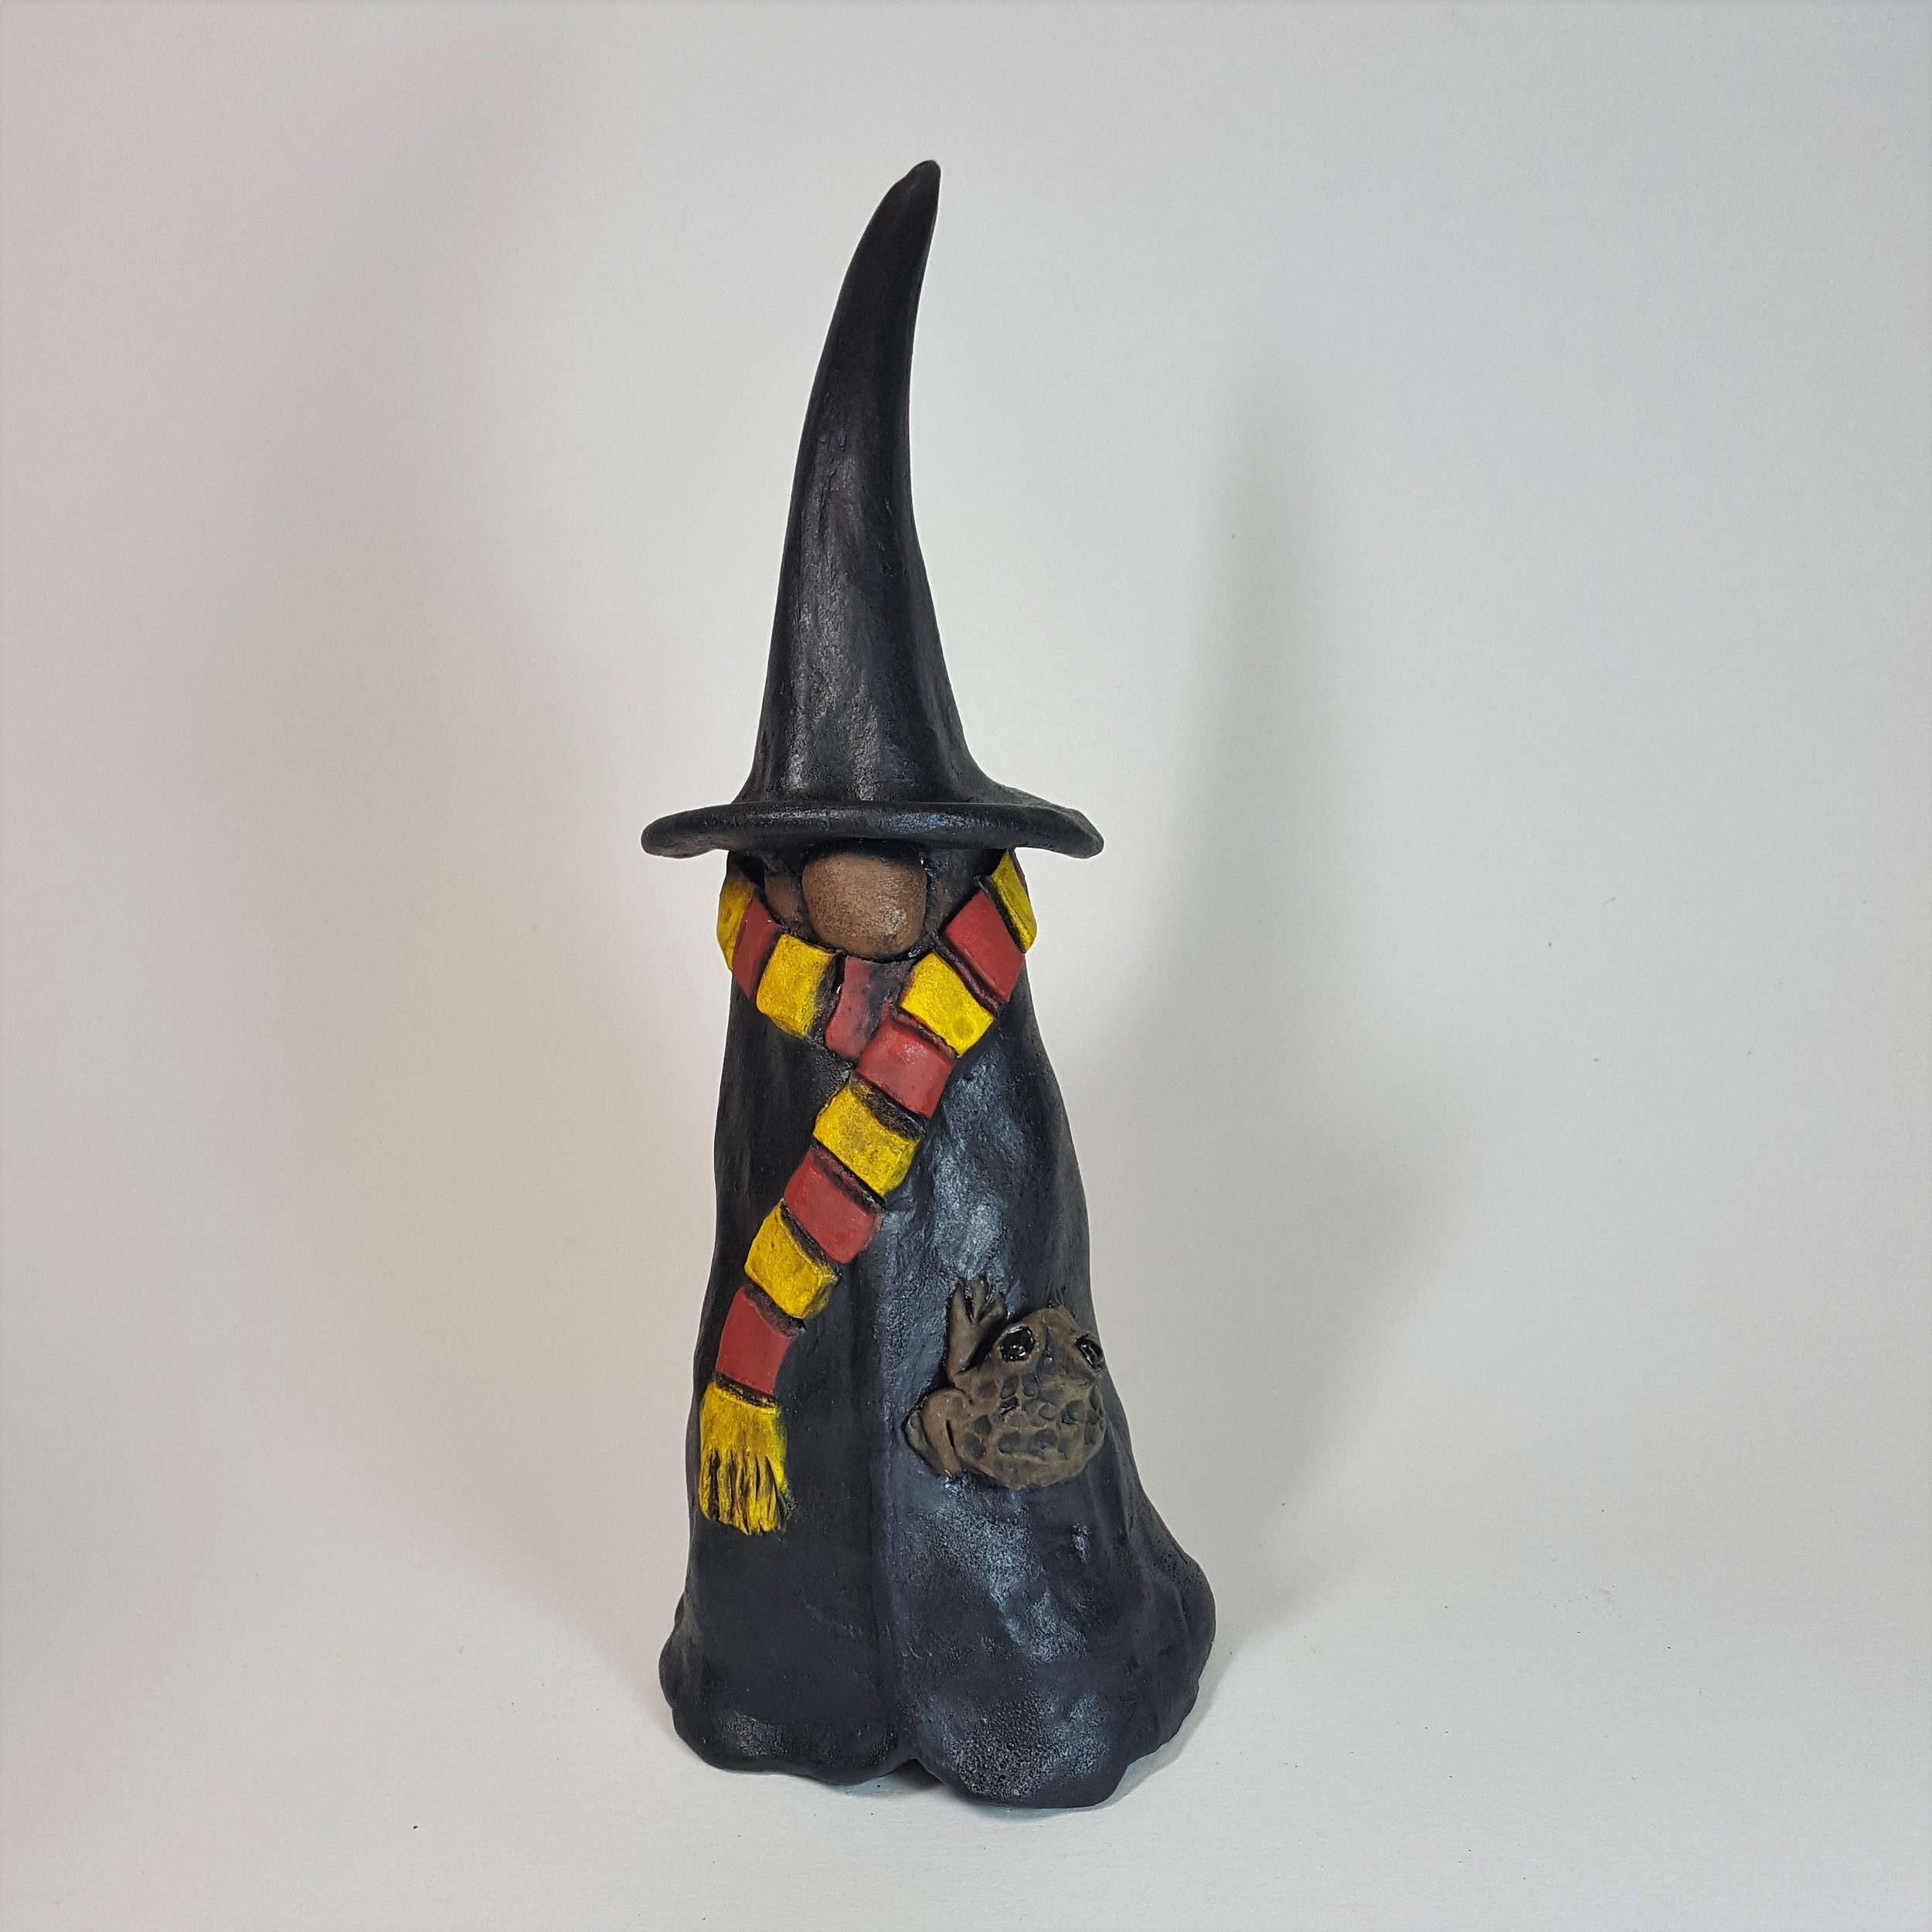 9 Inch Tall Witch/Wizard with Toad - $60